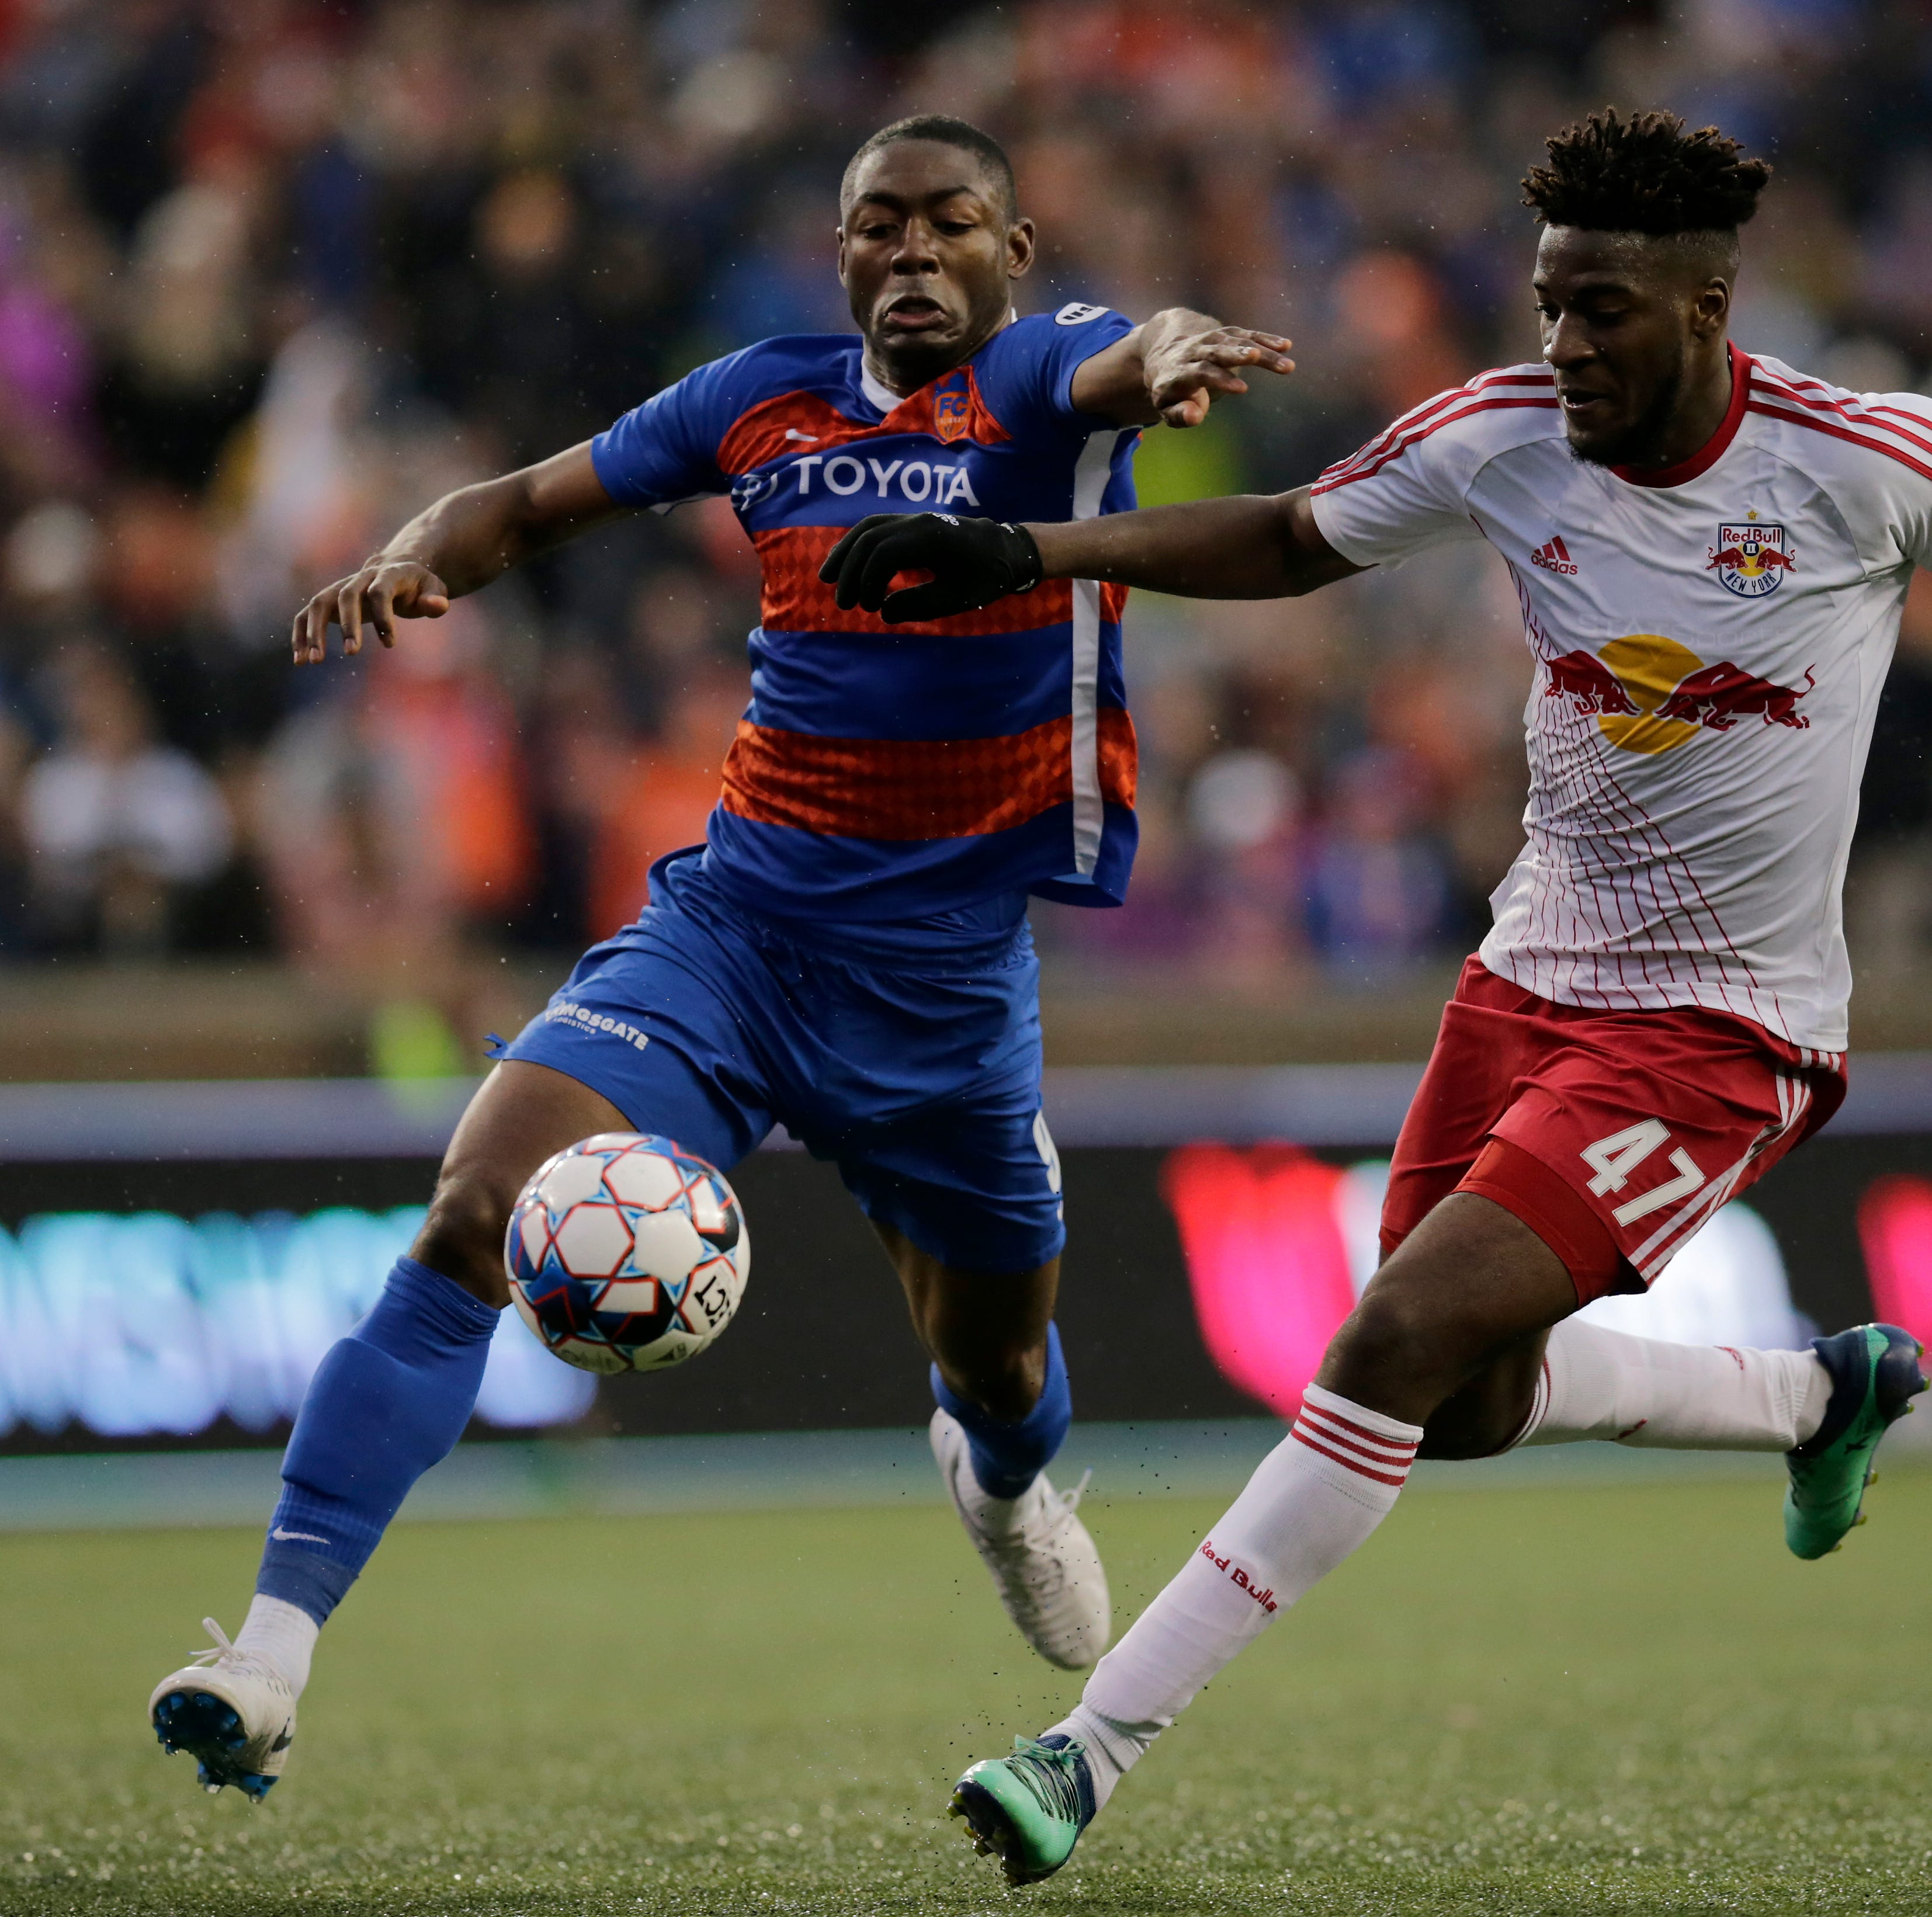 FC Cincinnati acquired four players, int'l roster spot at MLS expansion draft. The club also made a big trade.